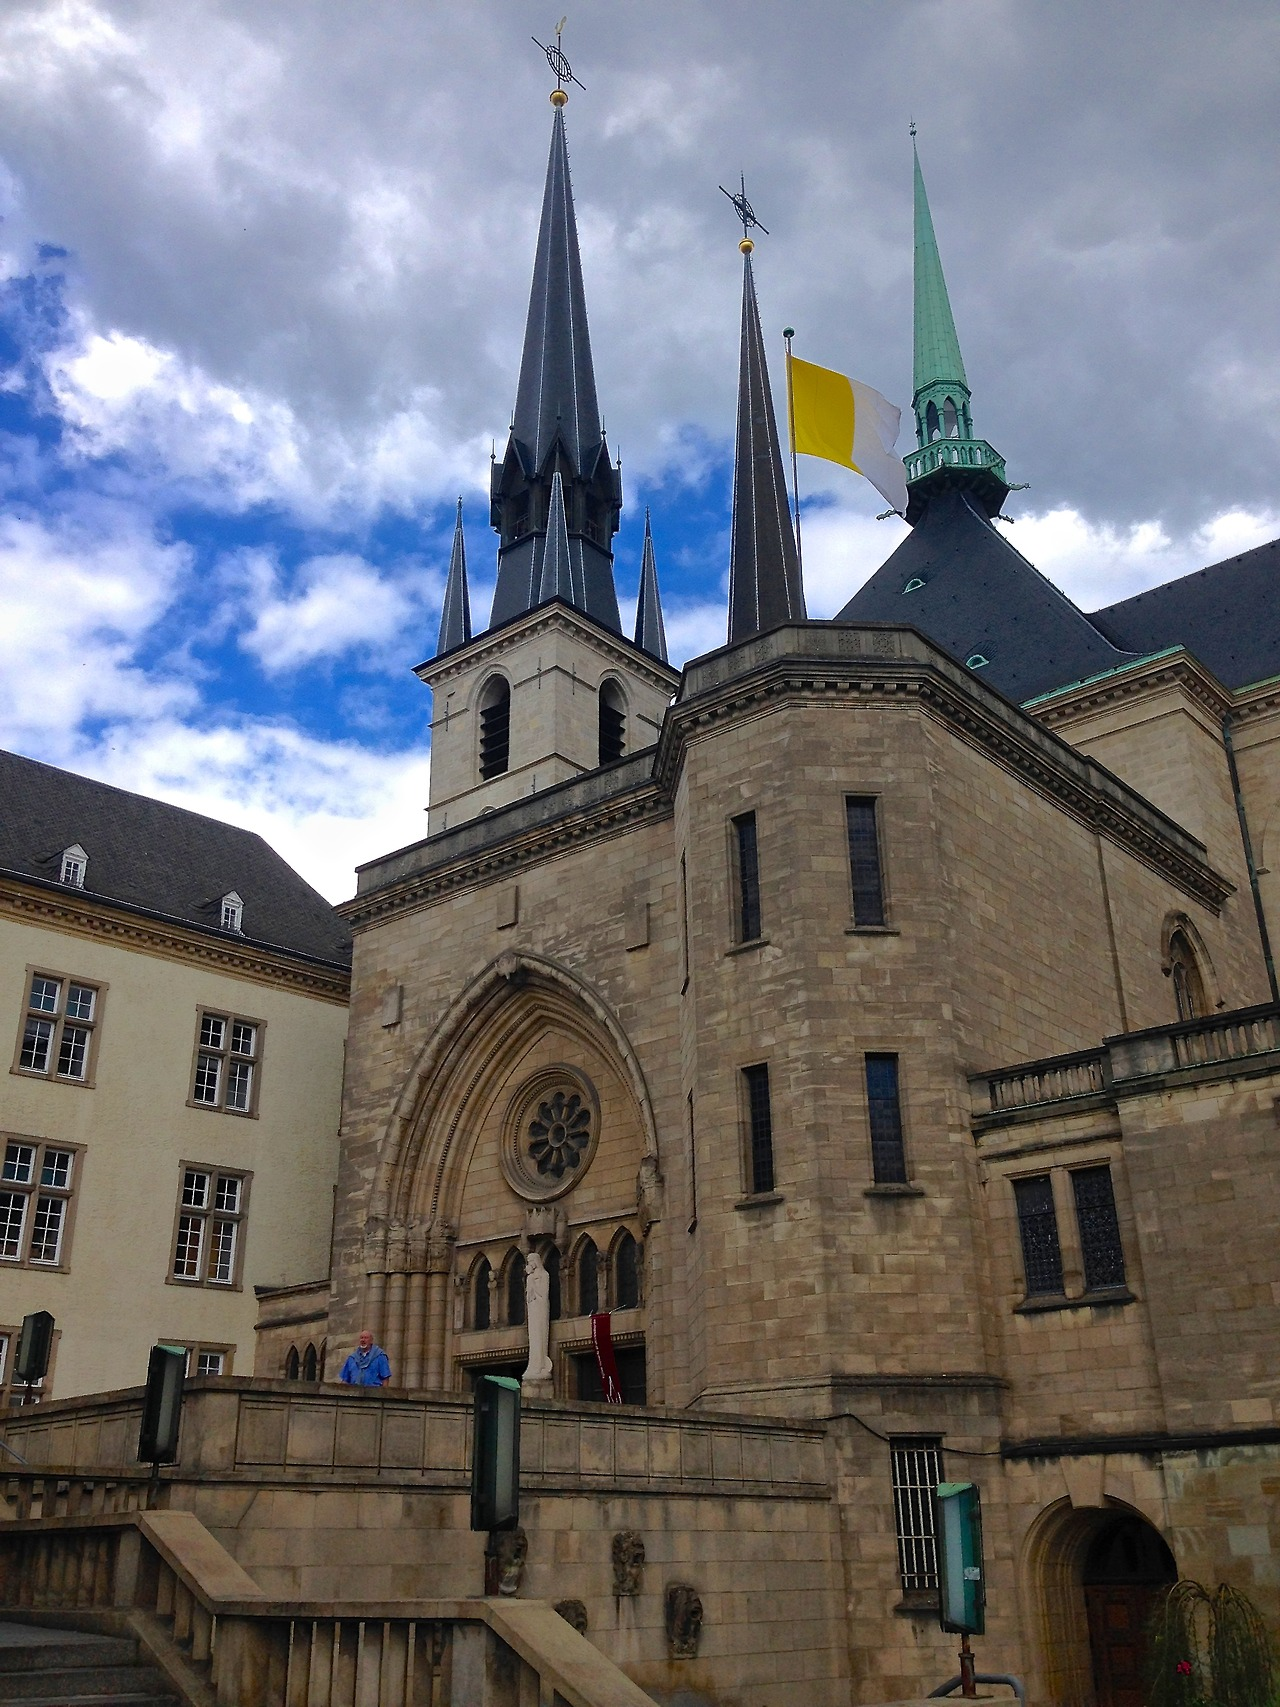 mysafiri :      Cathedral, Luxembourg City, Luxembourg    Man oh man, what an adventure this has been! We left our hostel in Brussels in the mid-afternoon and headed to the train station to hop on the road to Paris—and we could hardly contain our excitement. But when we arrived at the platform we were informed that due to huge scale protests and strikes in the public transportation sector, we would need to buy a seventy euro reservation to get on the train, and that it was now too late to do that. Eyes glistening, we saw our train pull out from the station and leave us in the dust. But, in the true spirit of wanderlust, we found the next available train and decided to hop on and see where we wound up. And so we arrived in Luxembourg that night! We stayed at an adorable little restaurant turned hotel, called La Veranda, which was about a fifteen-minute walk to the train station, and maybe twenty minutes to the city center. They had delicious (and free!) breakfast in the morning, and given that the restaurant was directly below us, we were never left wanting for a bite to eat. I honestly couldn't tell you all the things we saw and did in Luxembourg, but we passed two days walking through town, relaxing, and going to see tons of churches, old buildings, and eating ice cream! Two days later we were finally able to get on a train to Paris, and off we went!                  For more information about the protests and strikes spreading across Europe, check out my article for The Odyssey Online at:  http://theodysseyonline.com/uva/uber-app-has-europe-uber-worried/60427